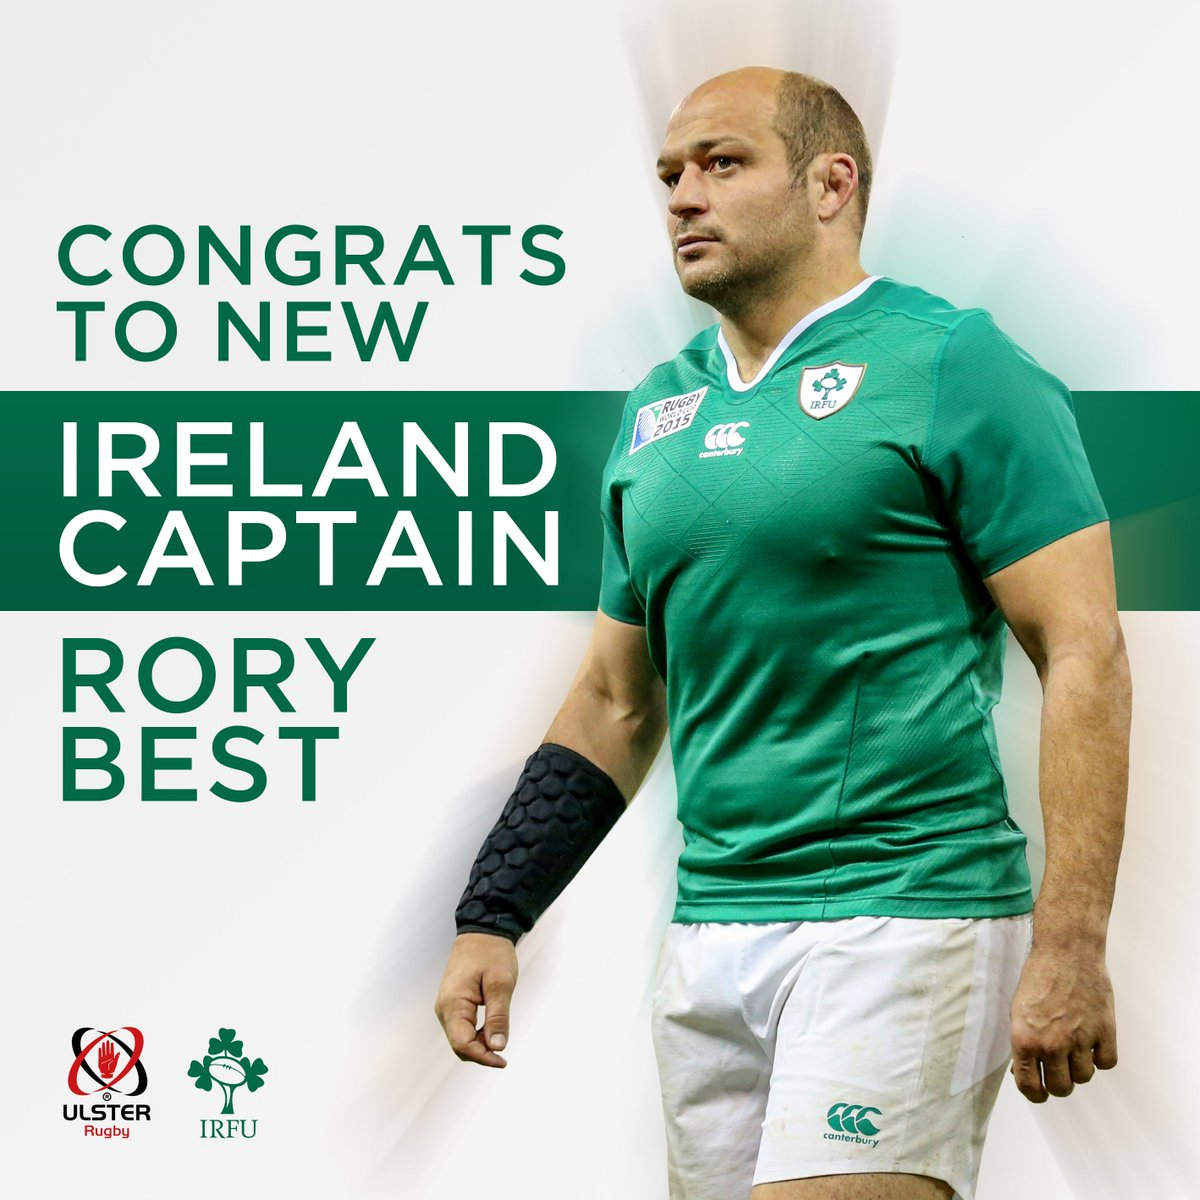 Congratulations to our captain @RoryBest2, who has just been named as the @IrishRugby captain for the #SixNations! https://t.co/Luhi4LZnCP